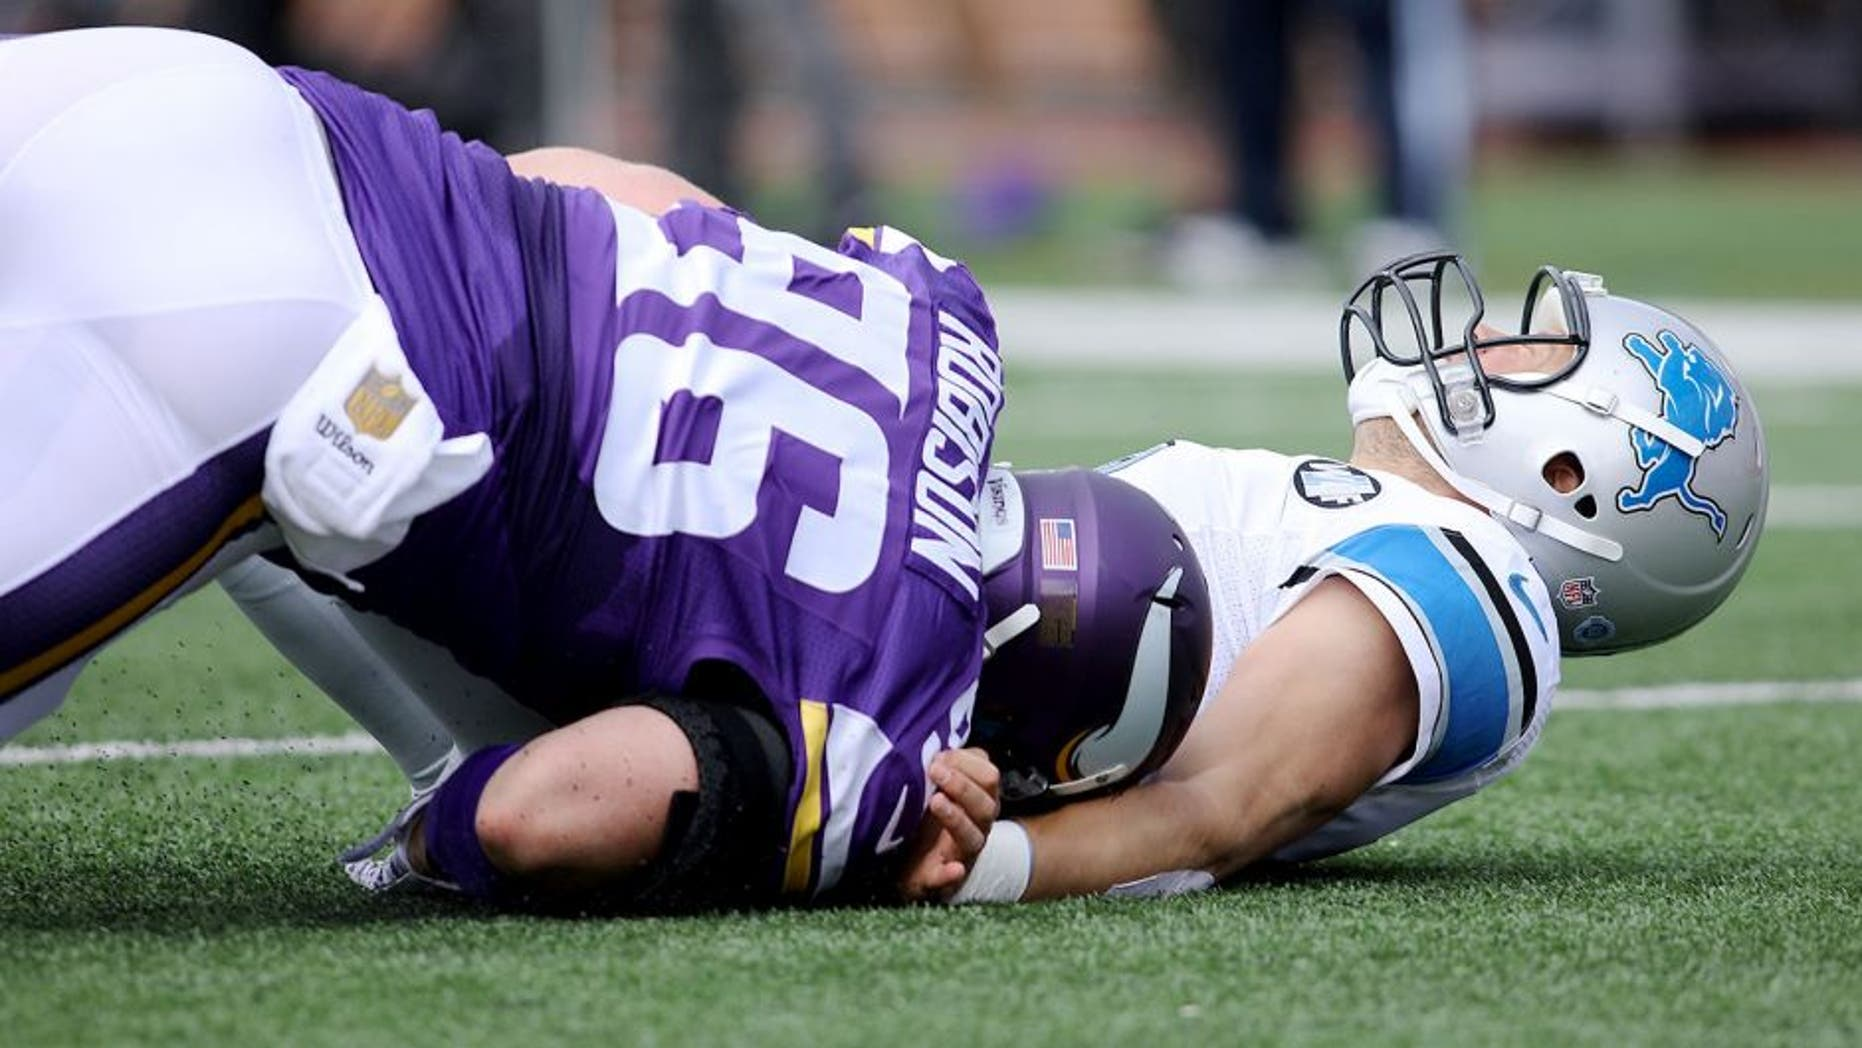 MINNEAPOLIS, MN - SEPTEMBER 20: Brian Robison #96 of the Minnesota Vikings tackles Matthew Stafford #9 of the Detroit Lions in the first quarter at TCF Bank Stadium on September 20, 2015 in Minneapolis, Minnesota. (Photo by Adam Bettcher/Getty Images)